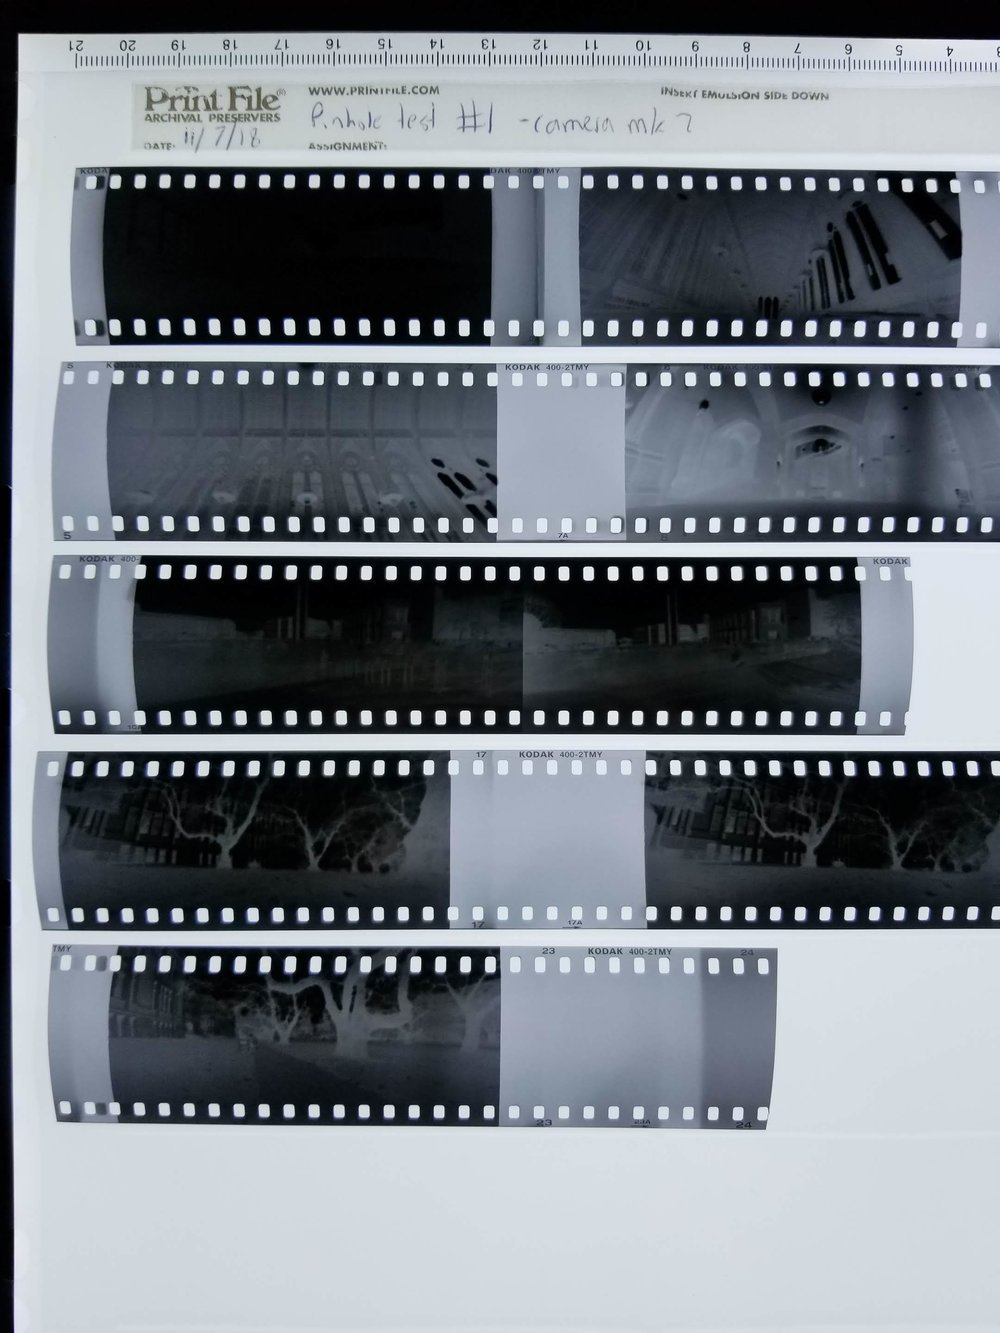 The first roll of film on my light table. Notice the light leaks and fogging visible between frames.